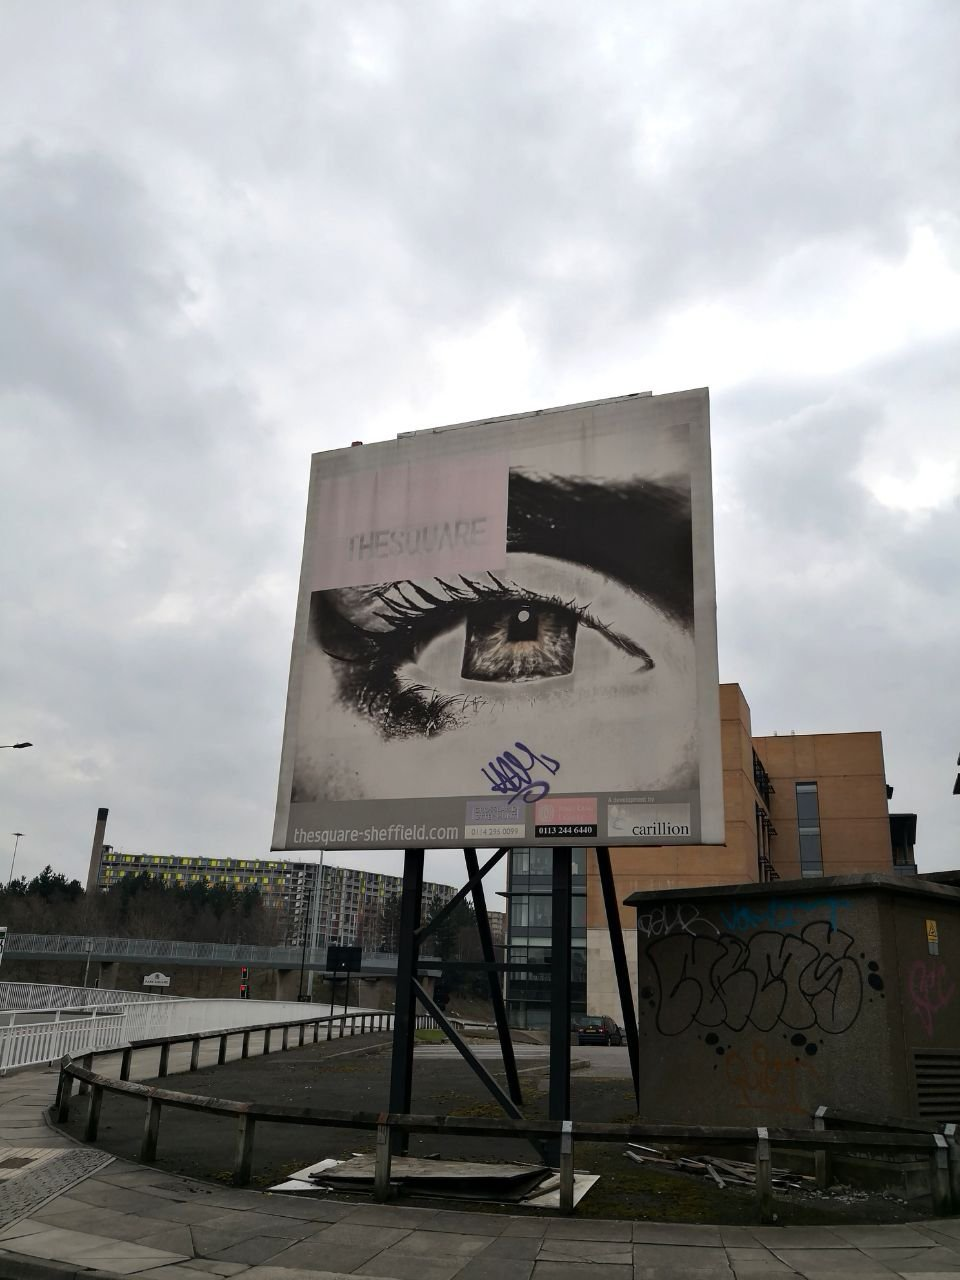 A billboard showing an illustration of a large eye. In the background, an industrial area and cloudy sky.